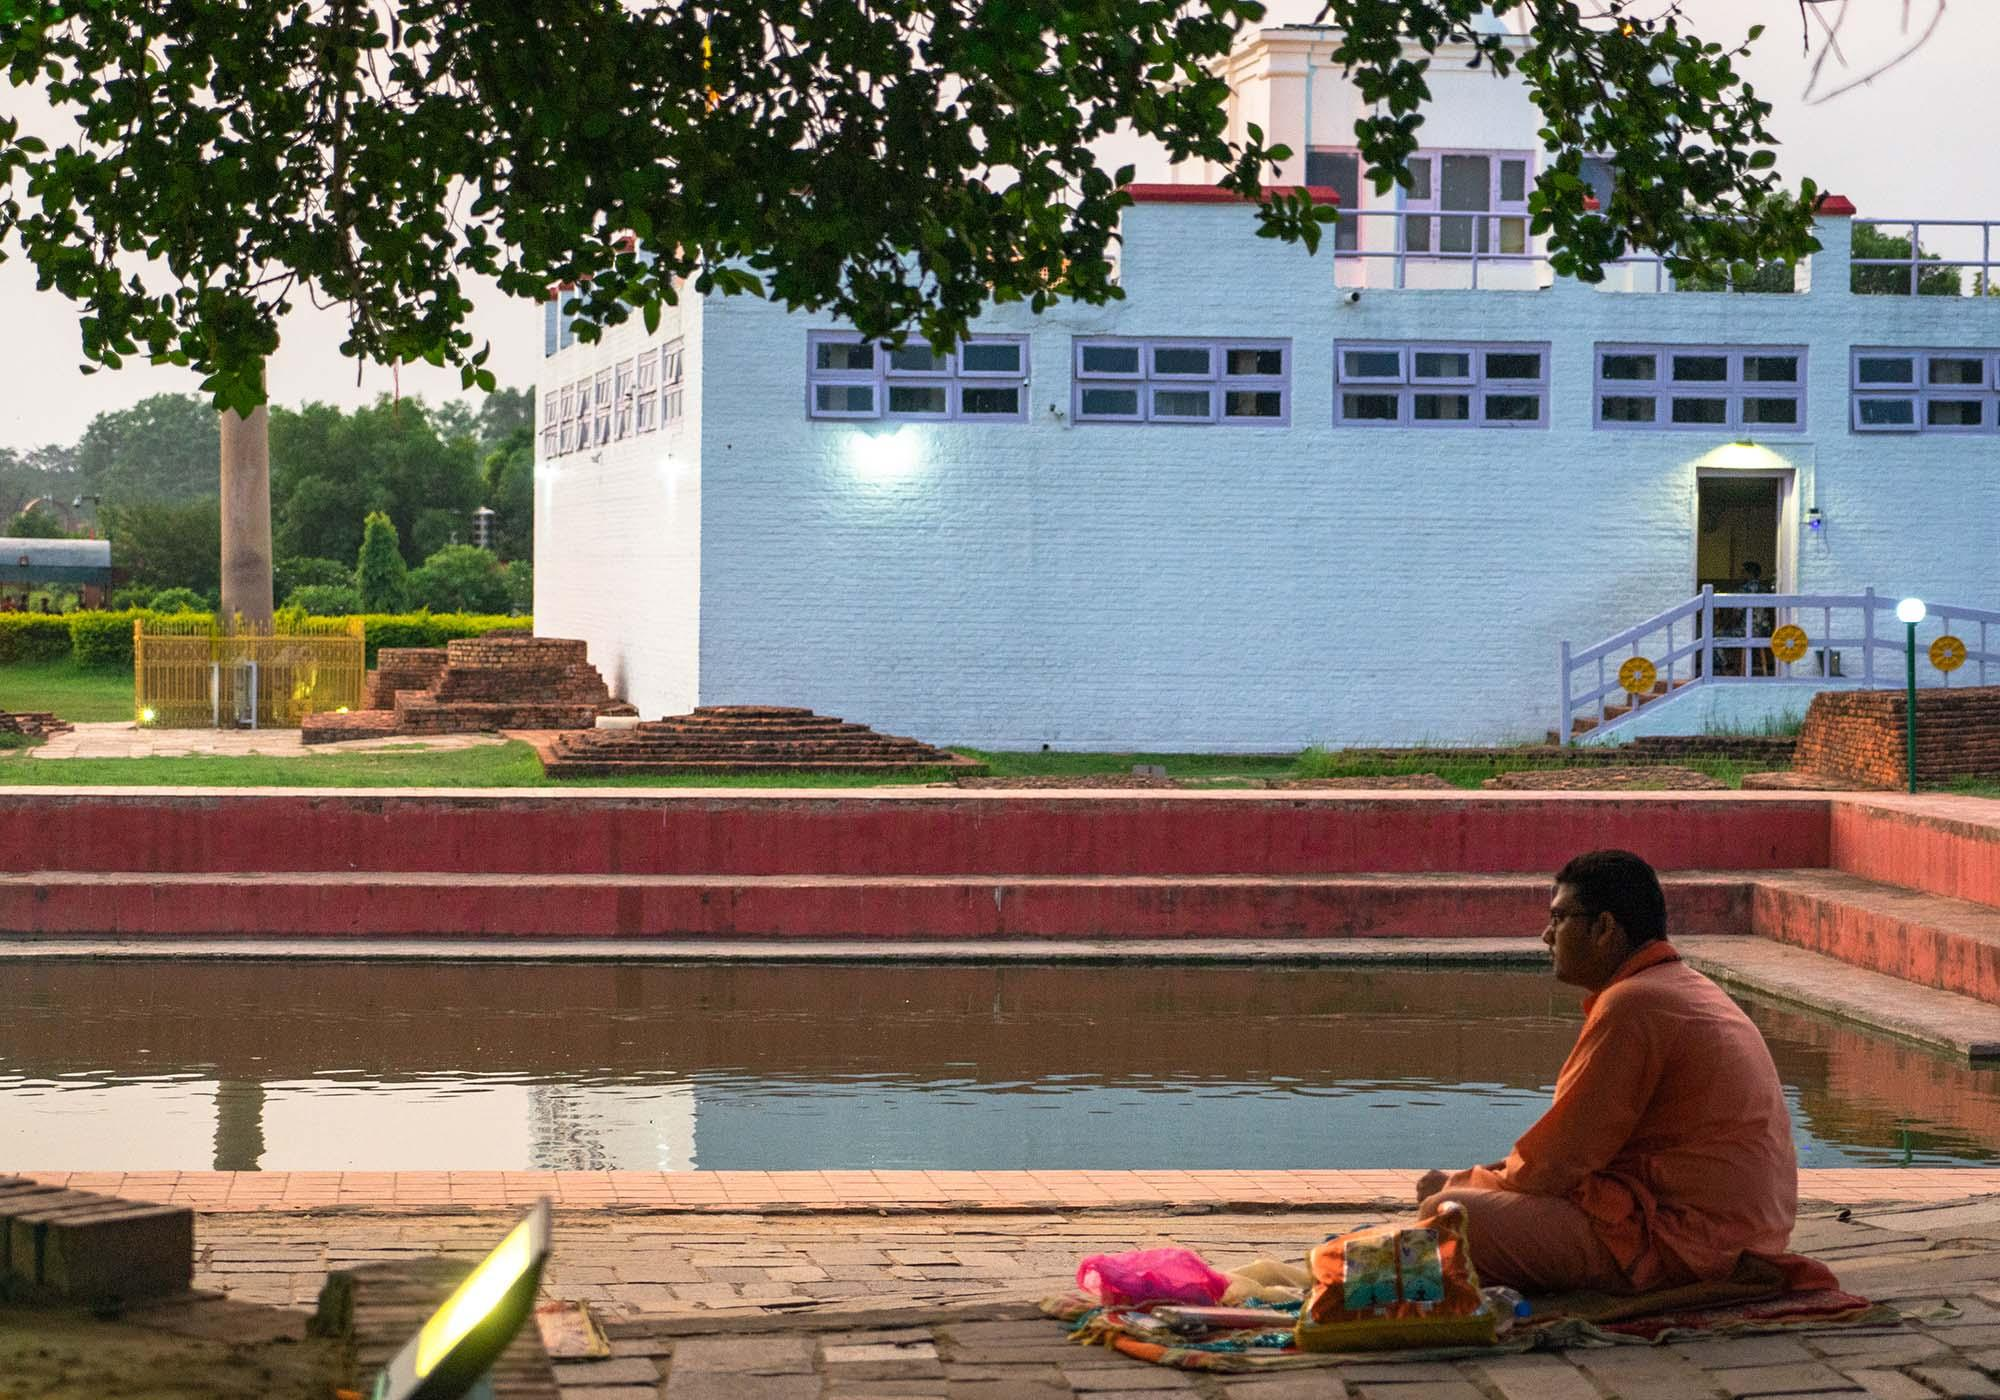 While Lumbini is a focal point for Buddhist pilgrims, there are visitors with a variety of faiths and beliefs who come for a spiritual experience. – © Michael Turtle